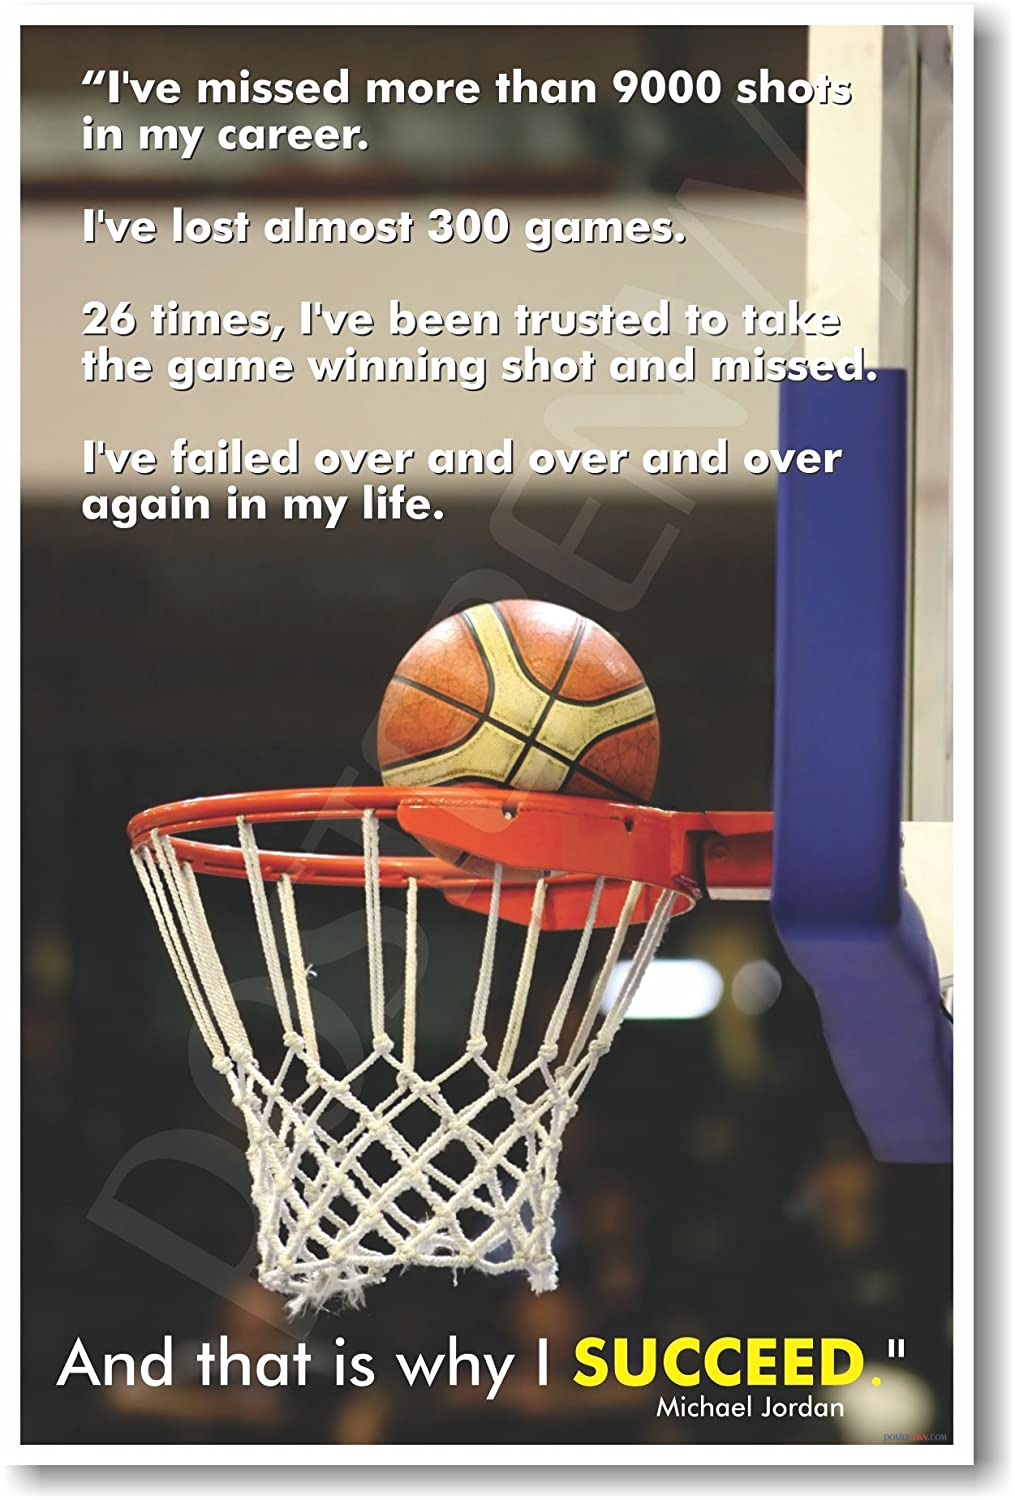 Michael Jordan That Is Why I Succeed - Classroom Motivational Poster